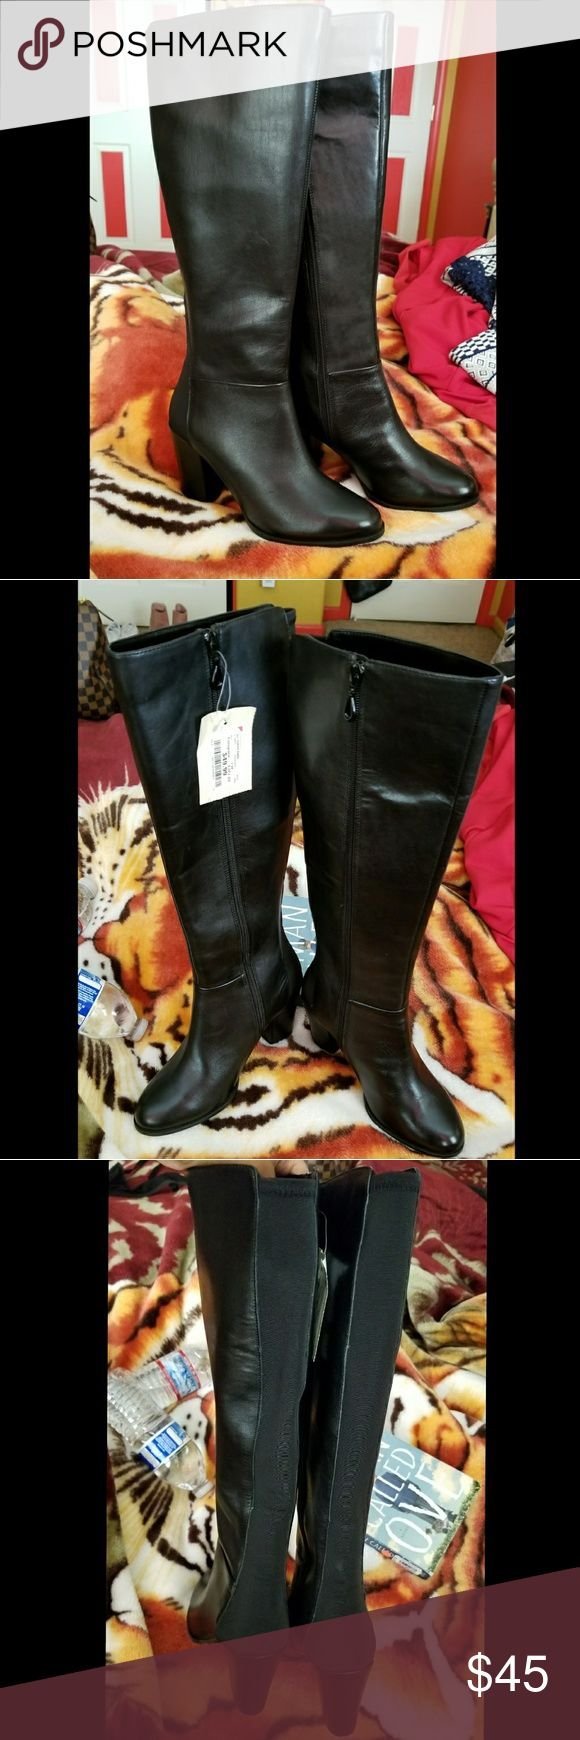 Black Faux Leather Boots Brand New Black boots with block heels from Burlington Coat Factory. Has a zipper and also stretchy material on the back side for wider calves. Offers and questions welcomed. Shoes Heeled Boots